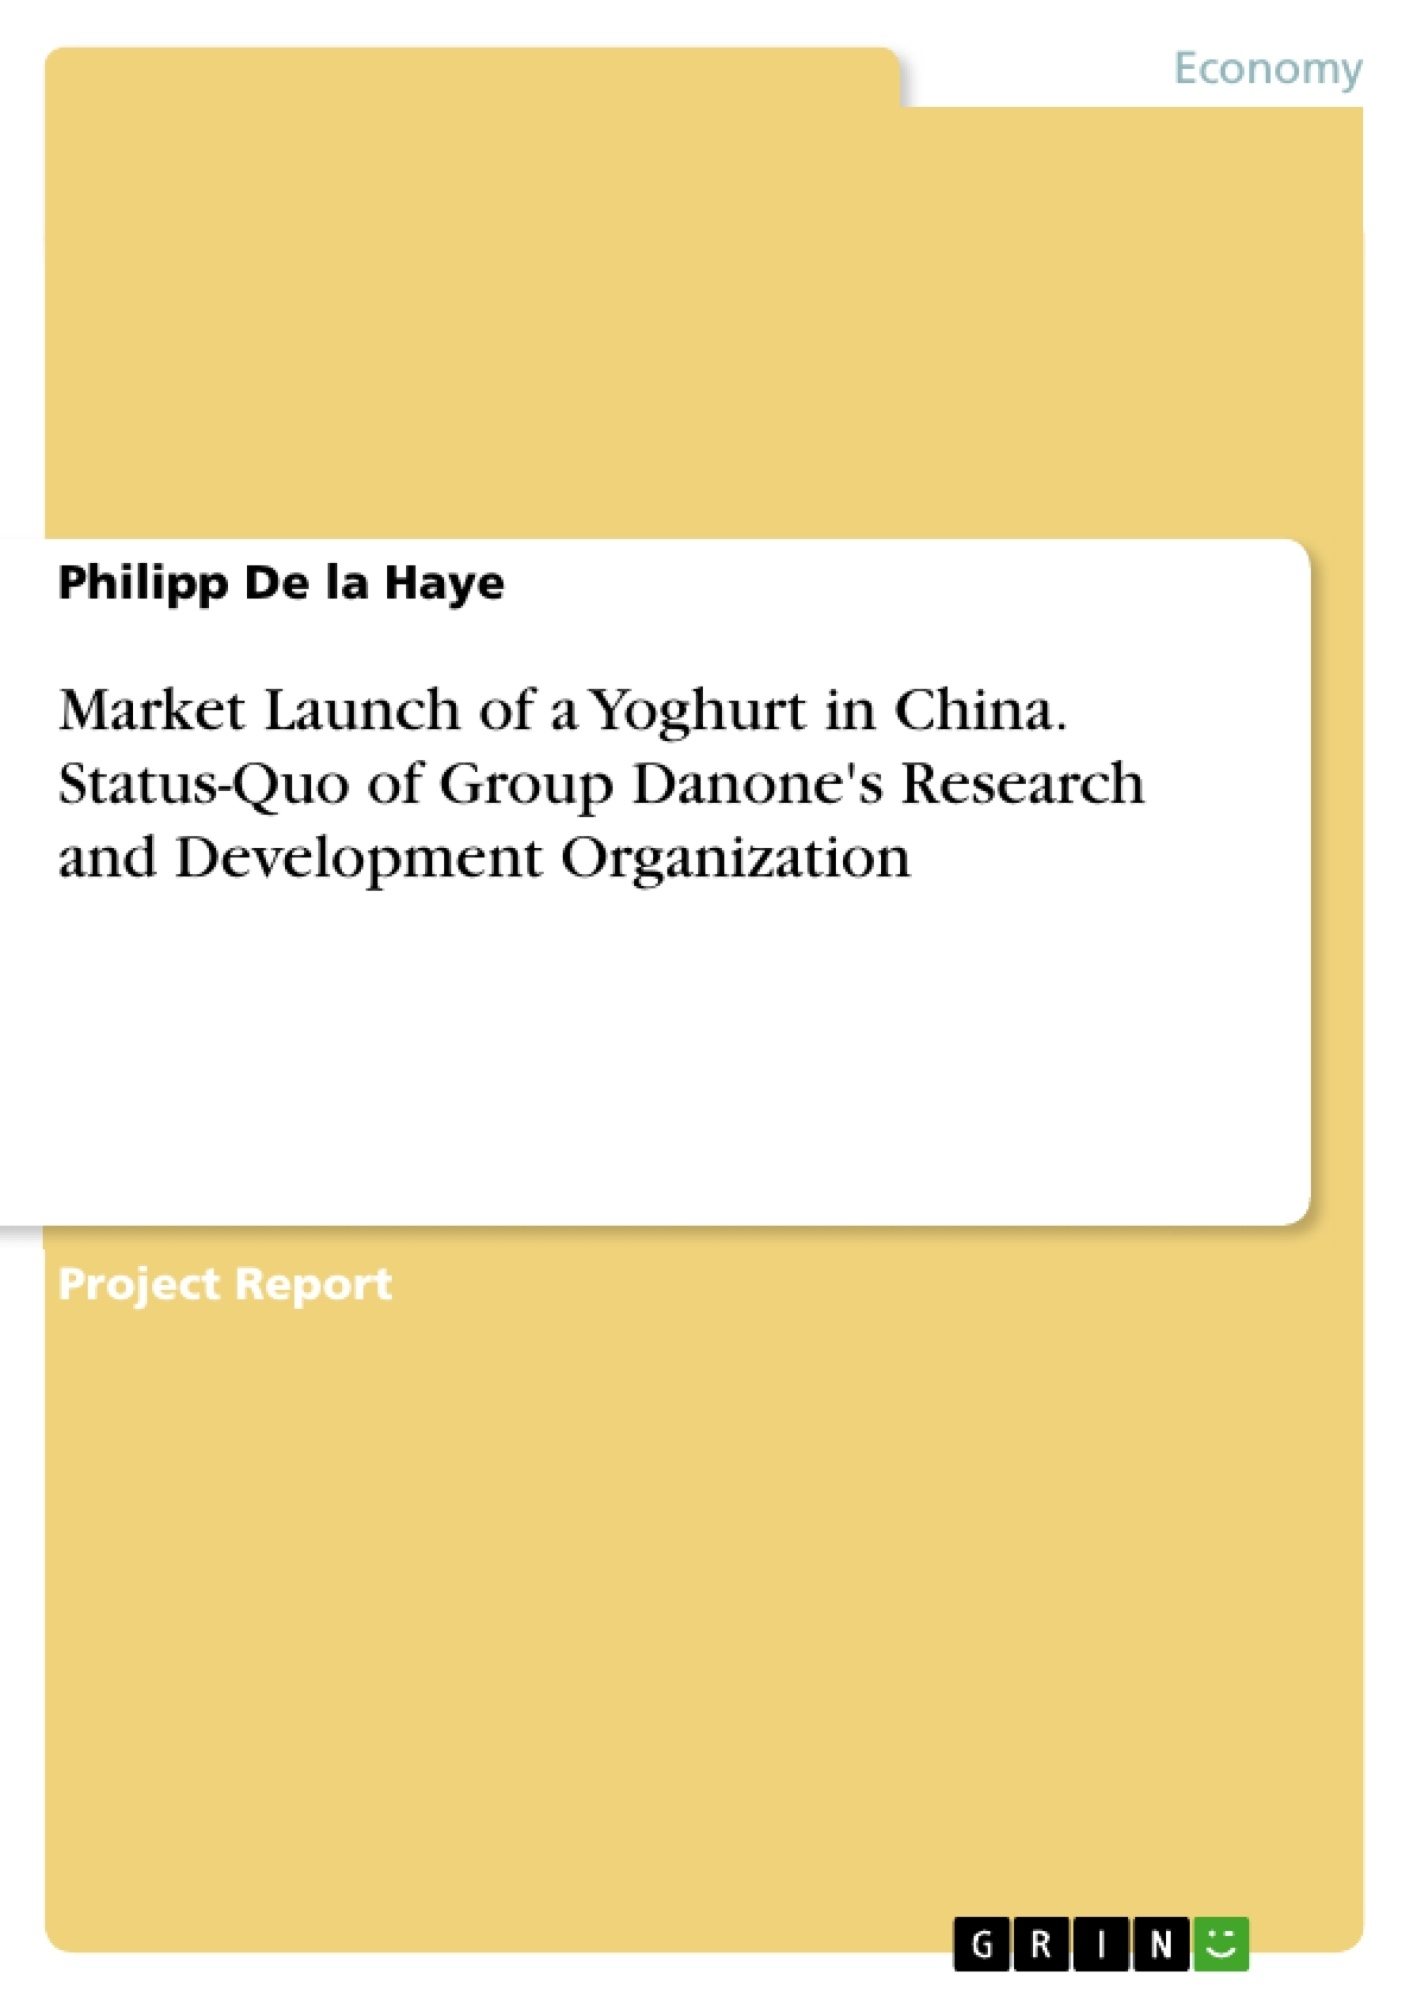 Title: Market Launch of a Yoghurt in China. Status-Quo of Group Danone's Research and Development Organization